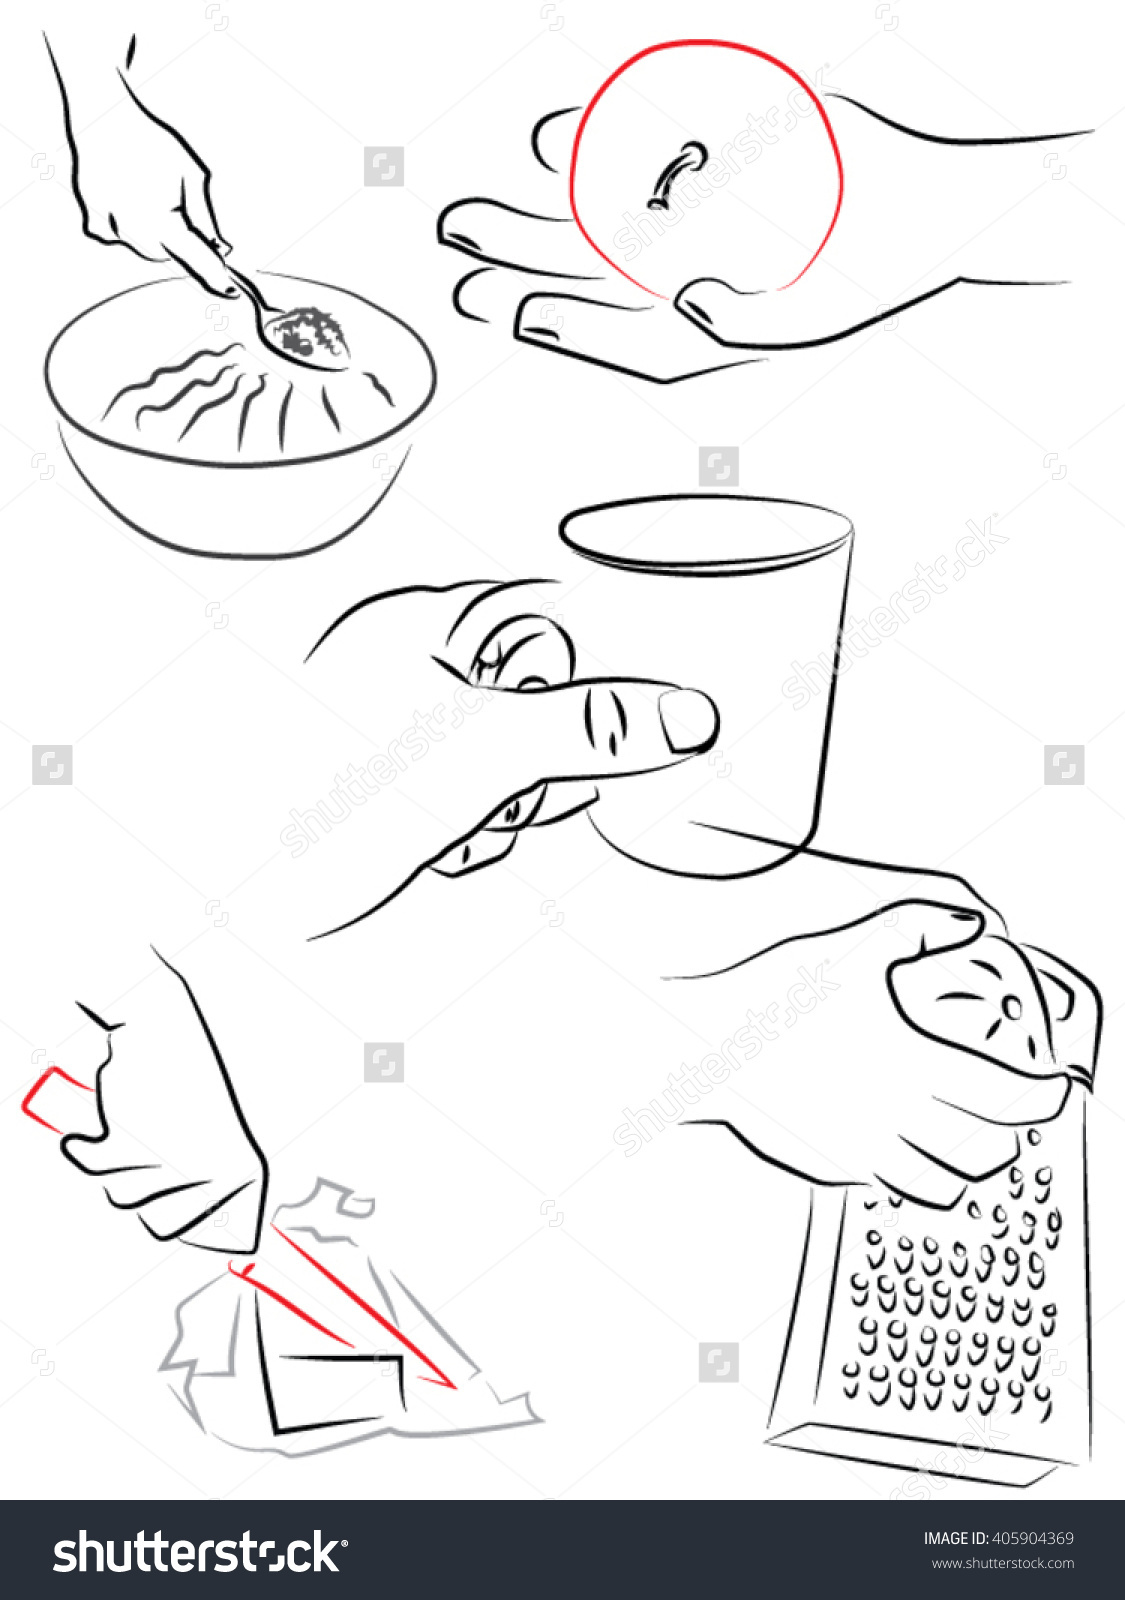 Holding A Spoon, Apple, Cup, Knife, Grater, Kitchen Utensils Stock.